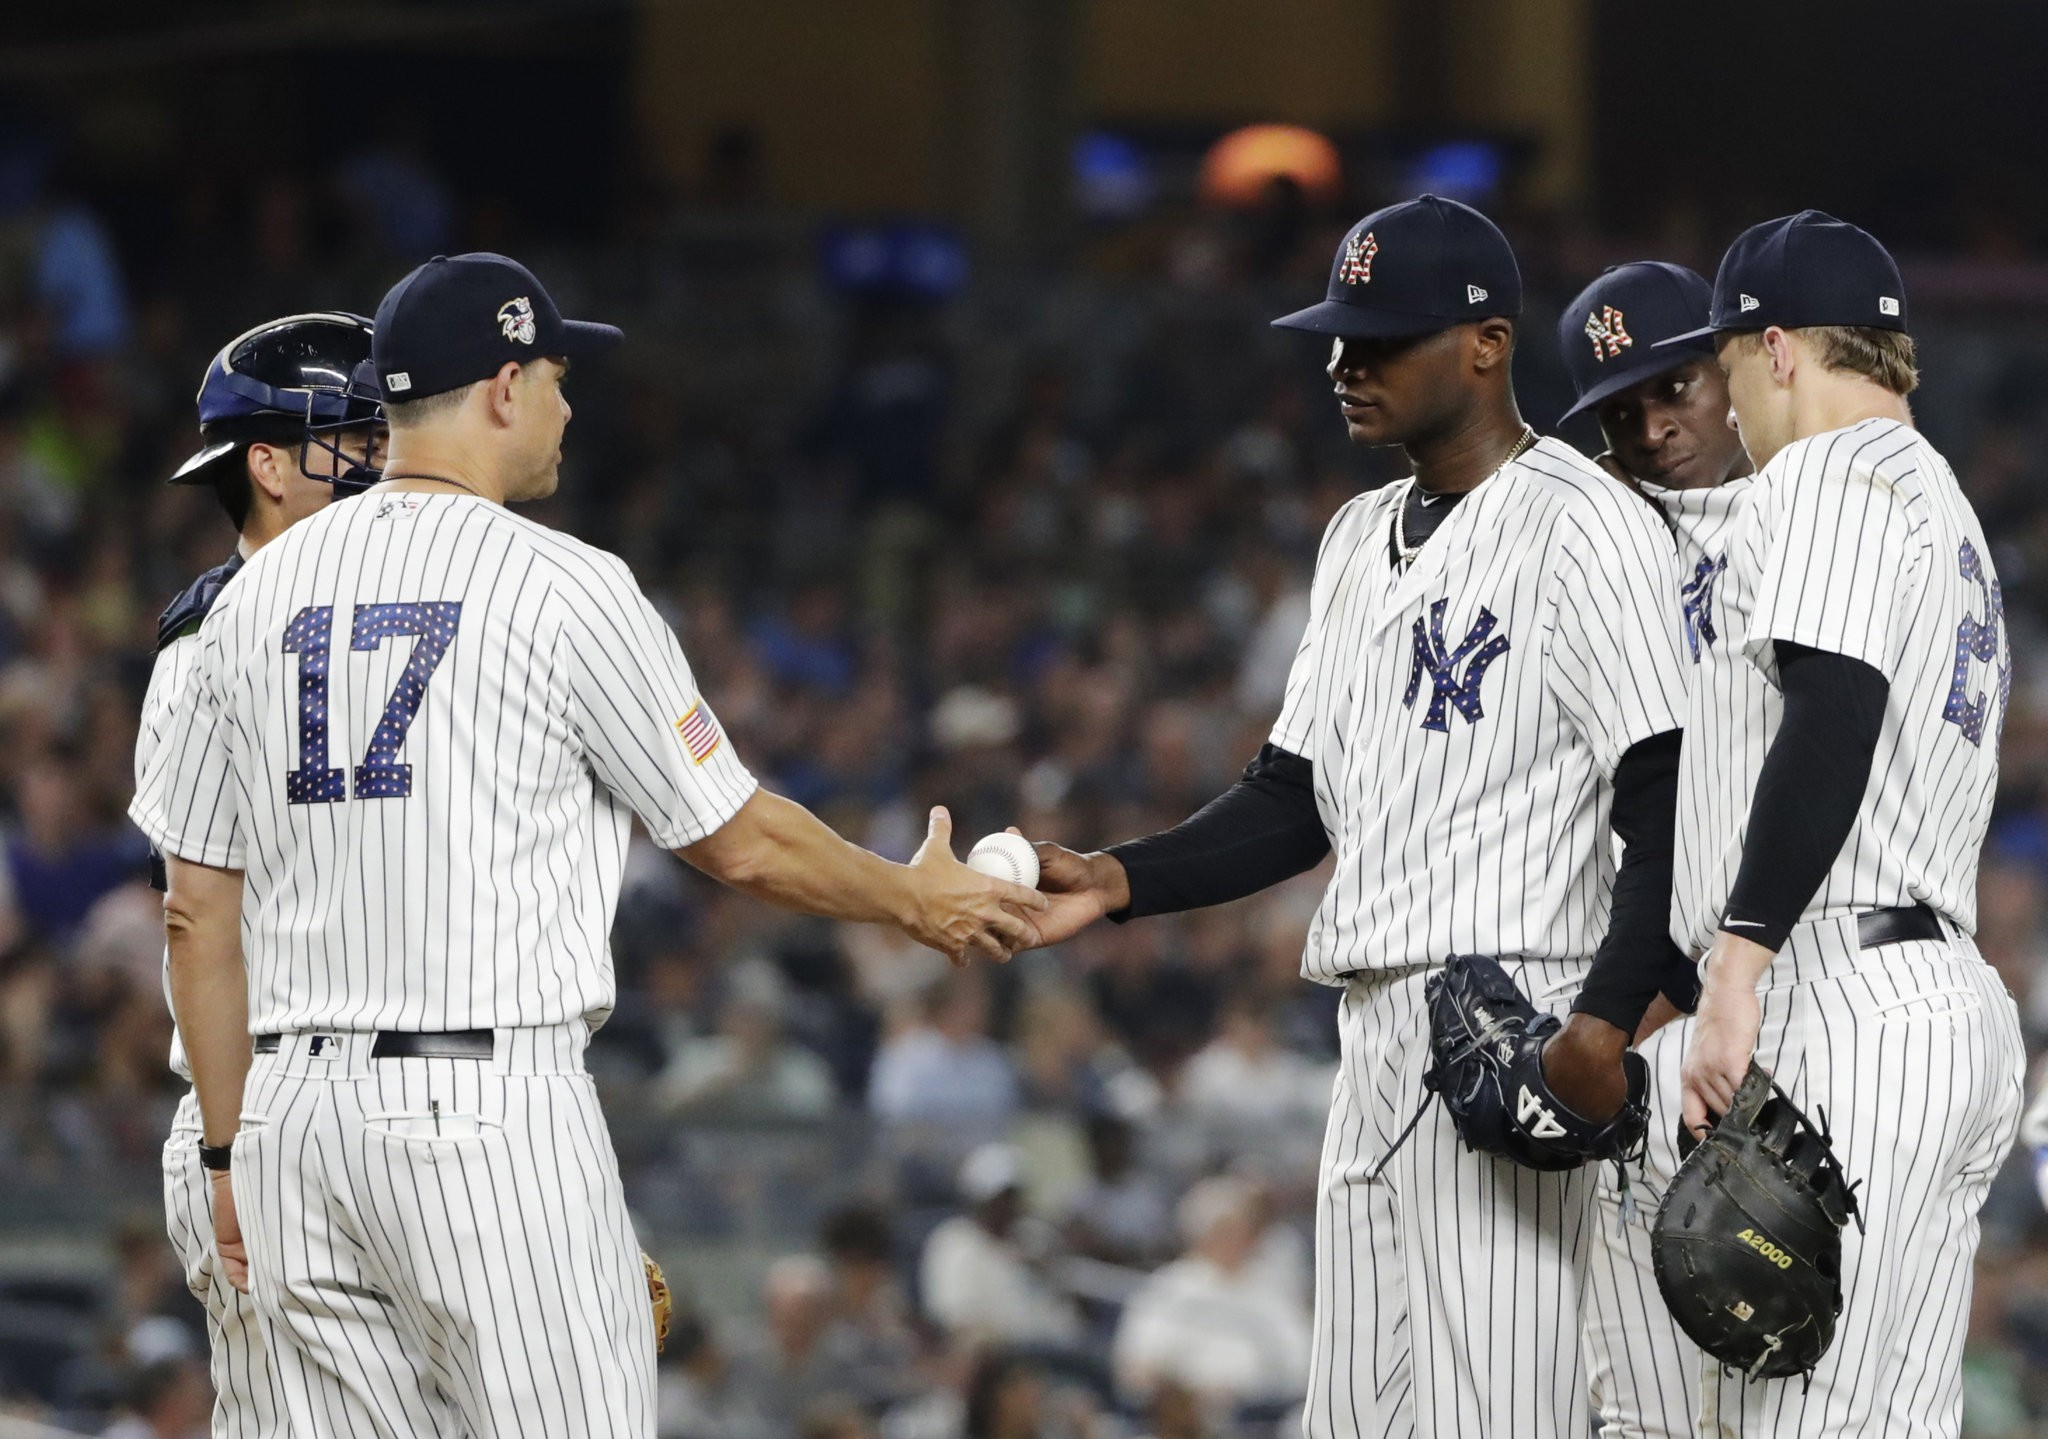 Why Yankees Aaron Boone Wore His Uniform Top For The 1st Time Nj Com